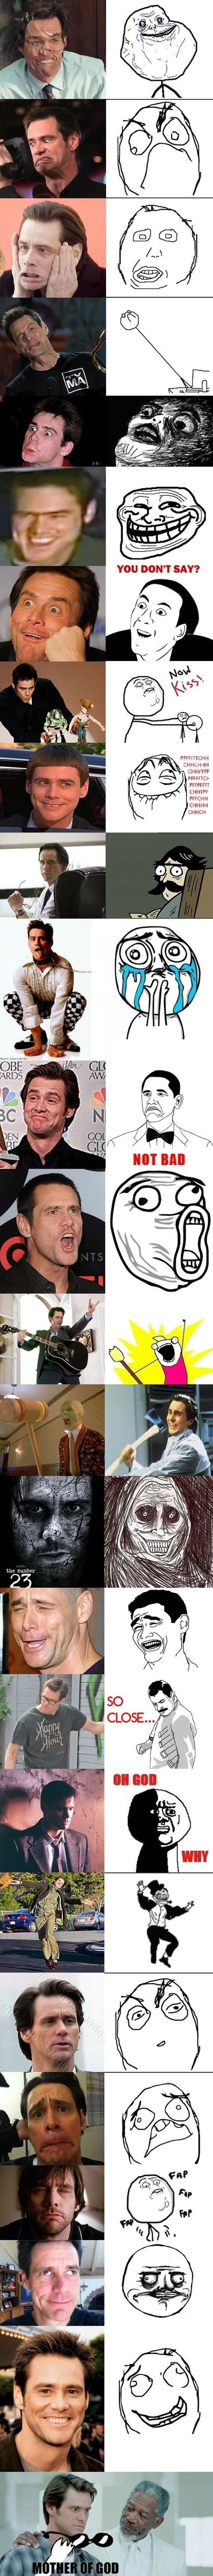 jim-carrey-and-rage-faces